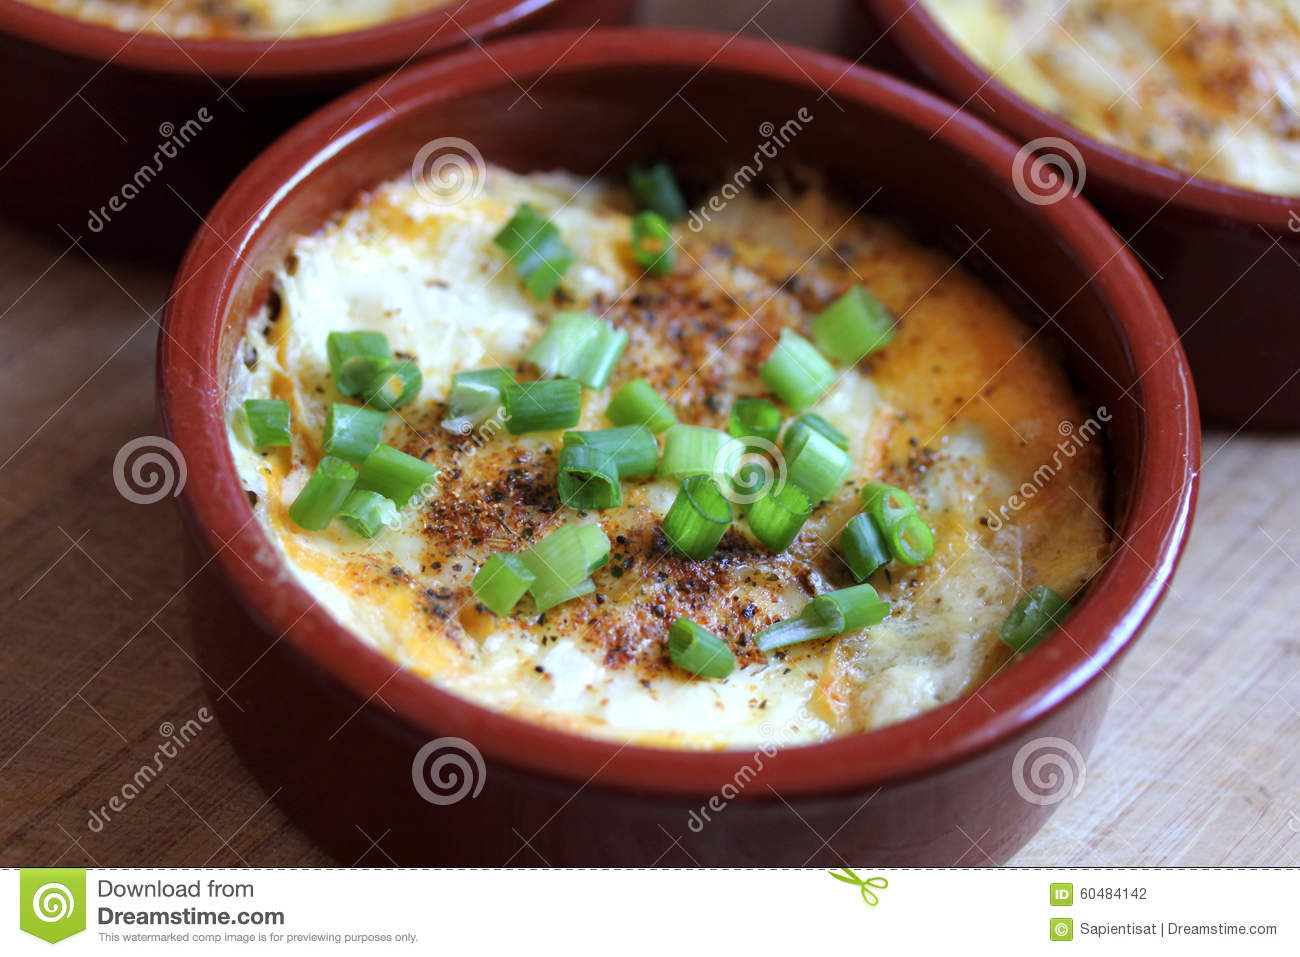 Potato Gratin Baked In A Small Ceramic Dish With A Rustic Setting.